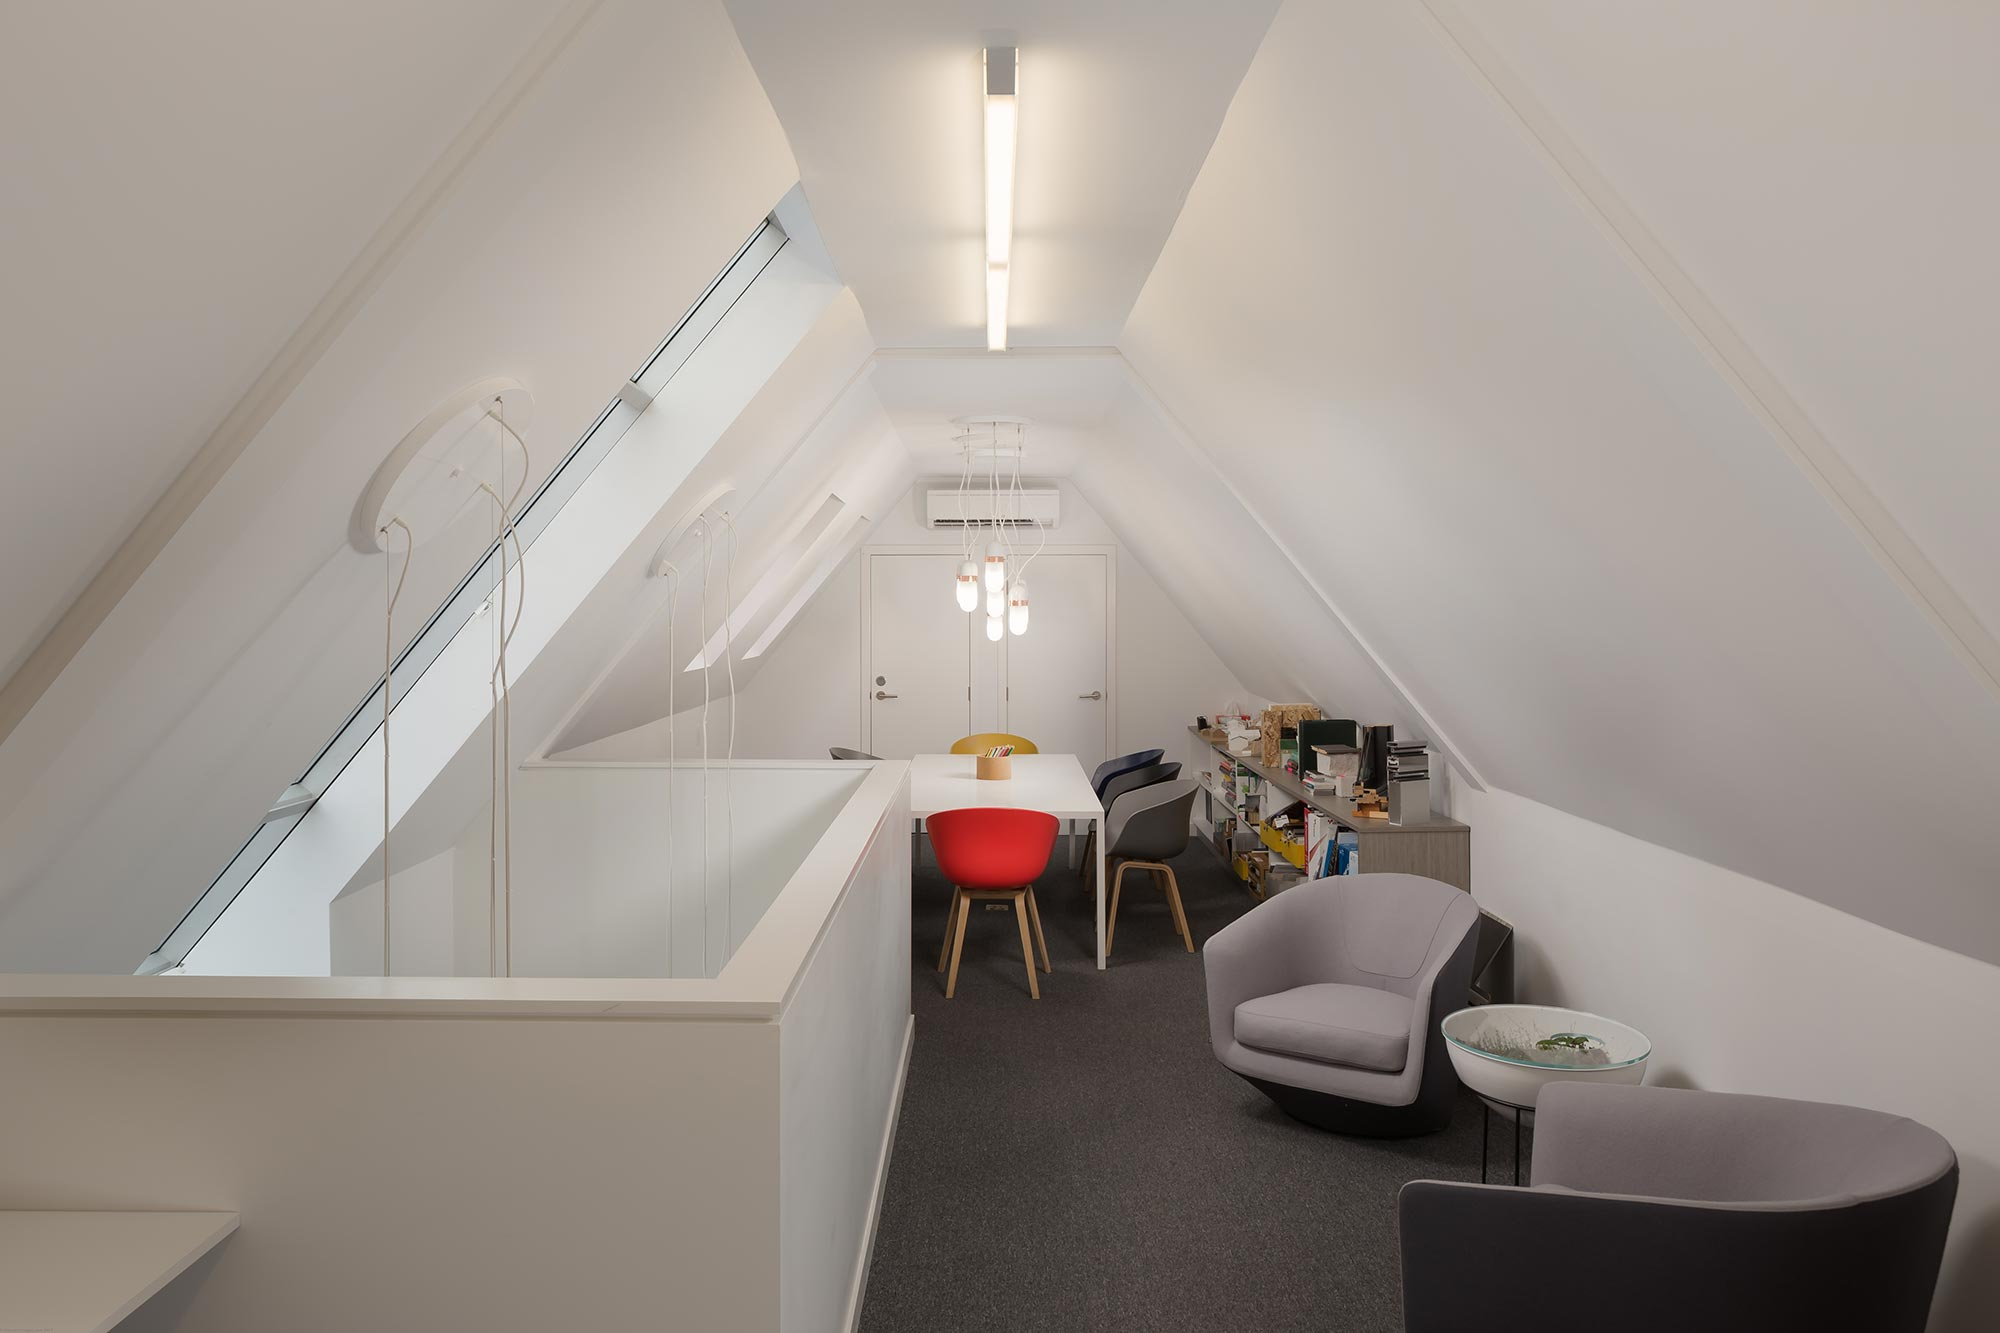 008-Mi-Fold-Co-working-Space-High-Res.jpg